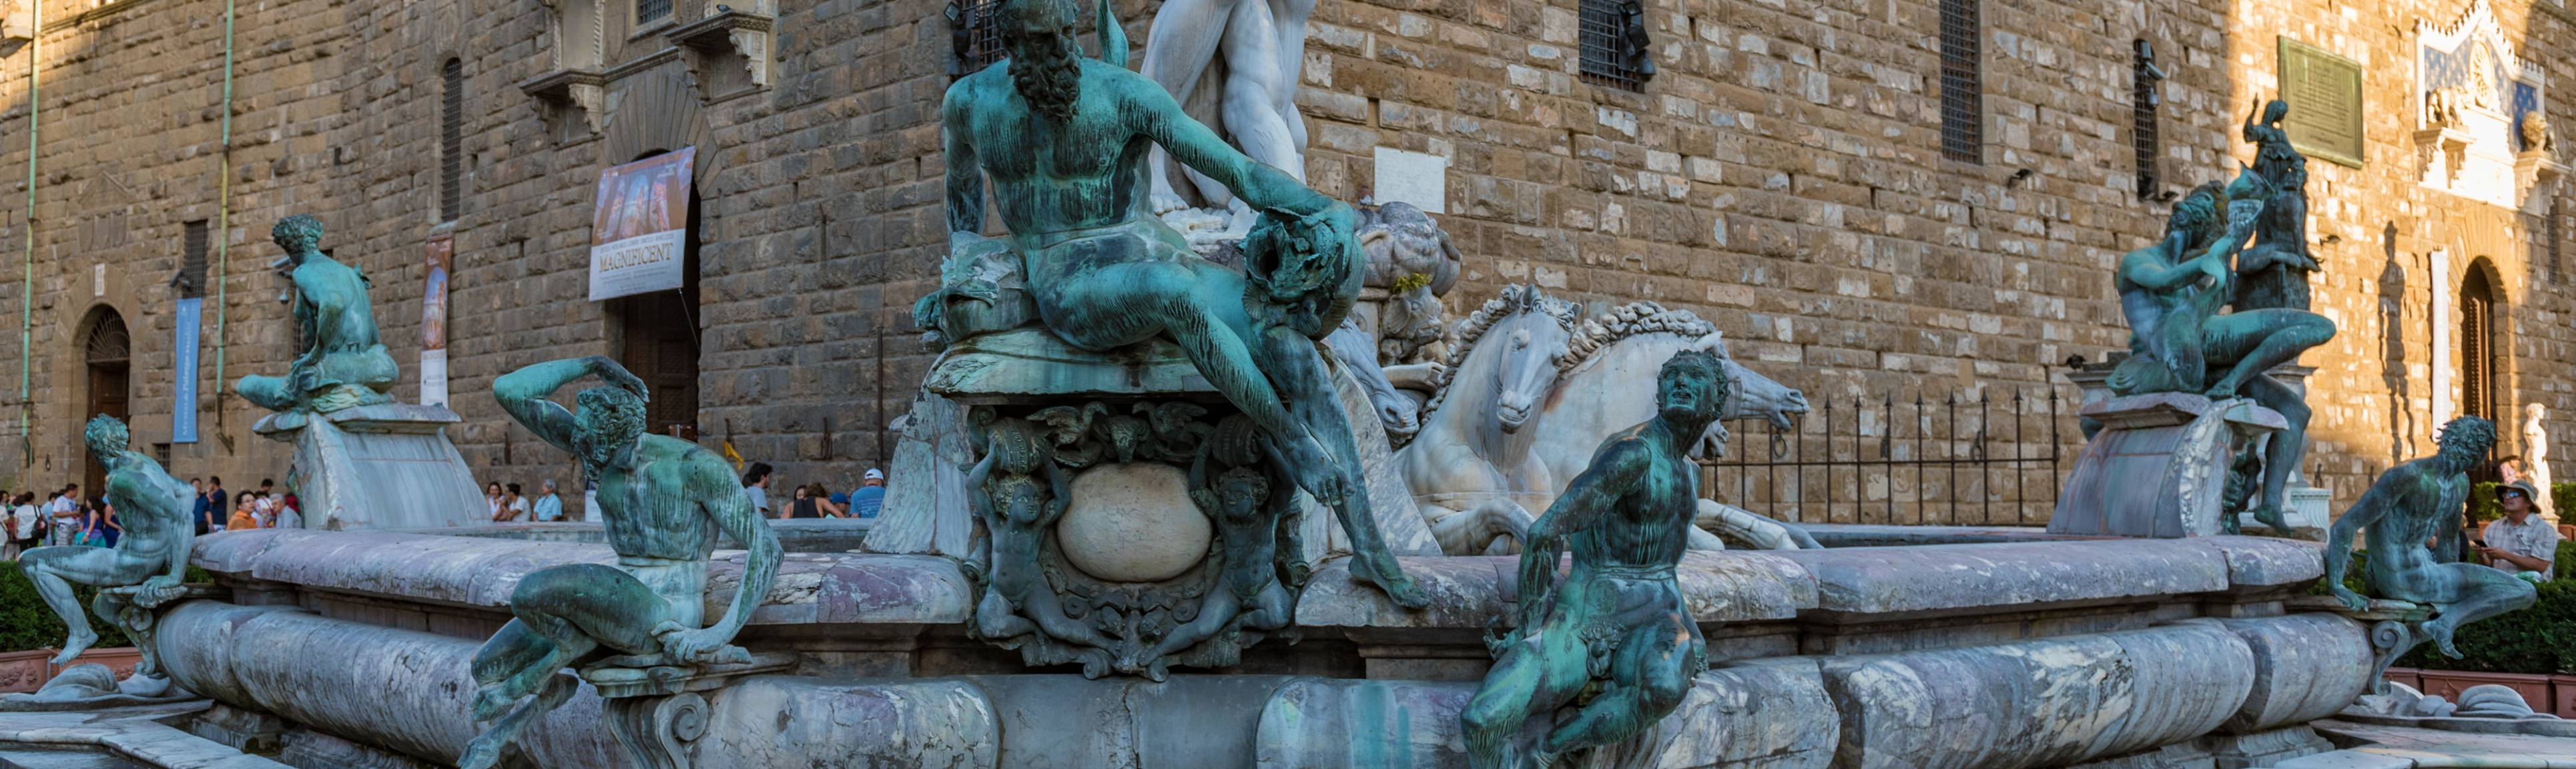 Statues decorating the front of Neptune's Fountain in Florence, Italy